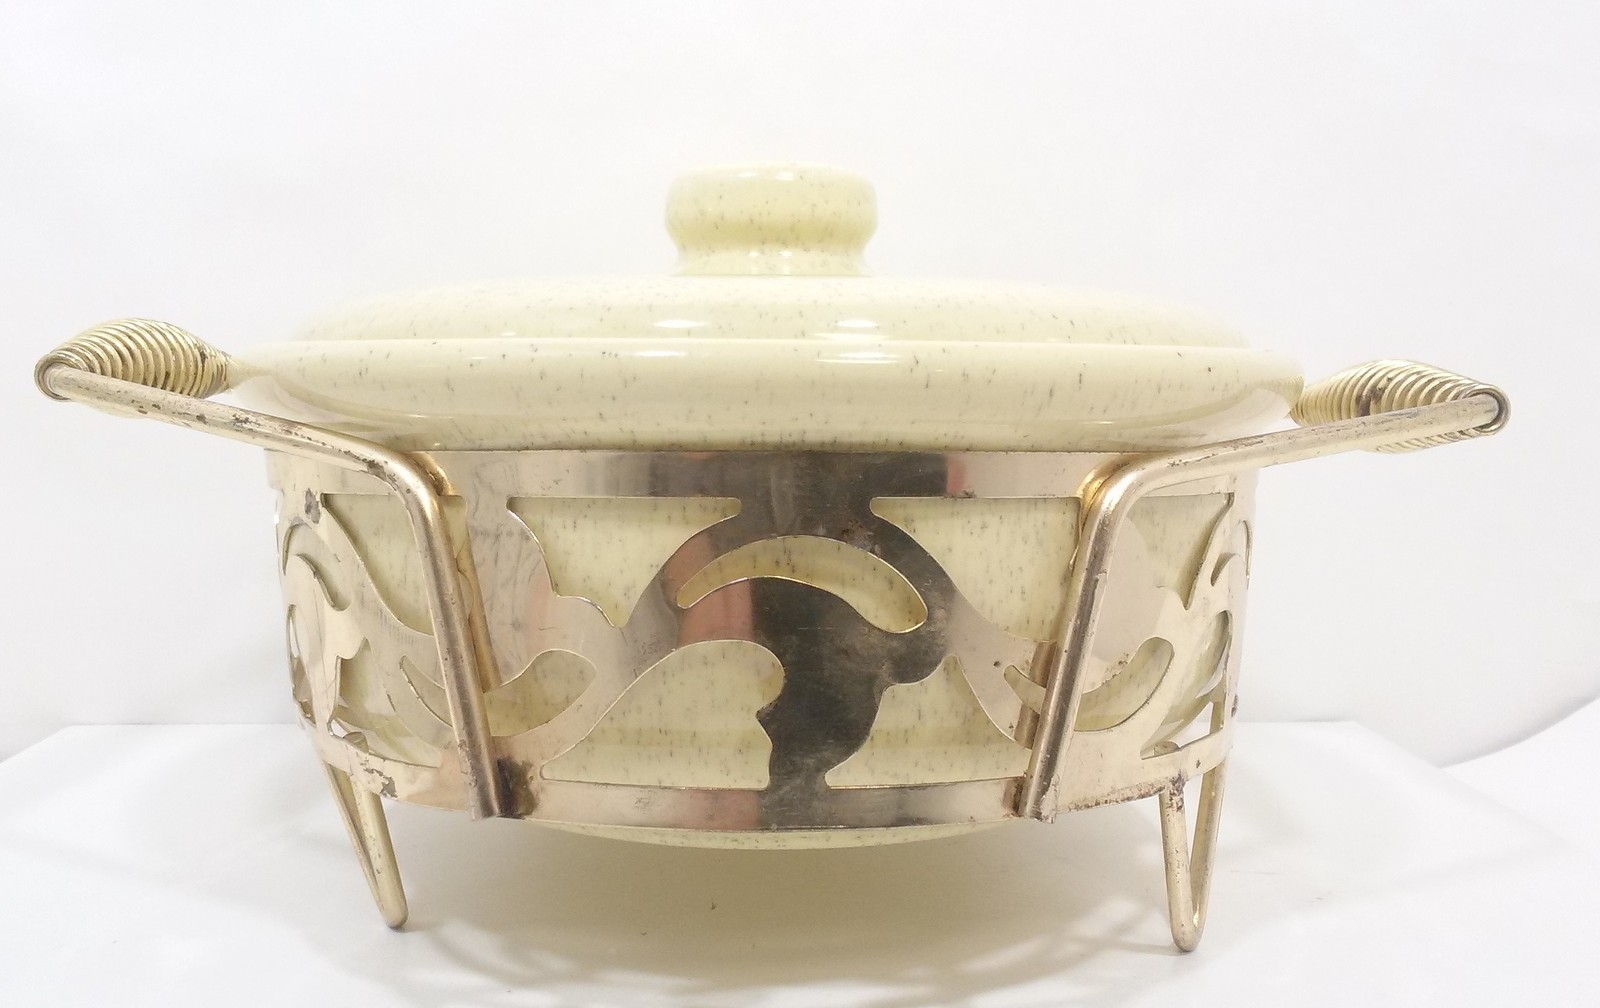 Primary image for Vintage Bauer Pottery Casserole, Lid & Metal Holder